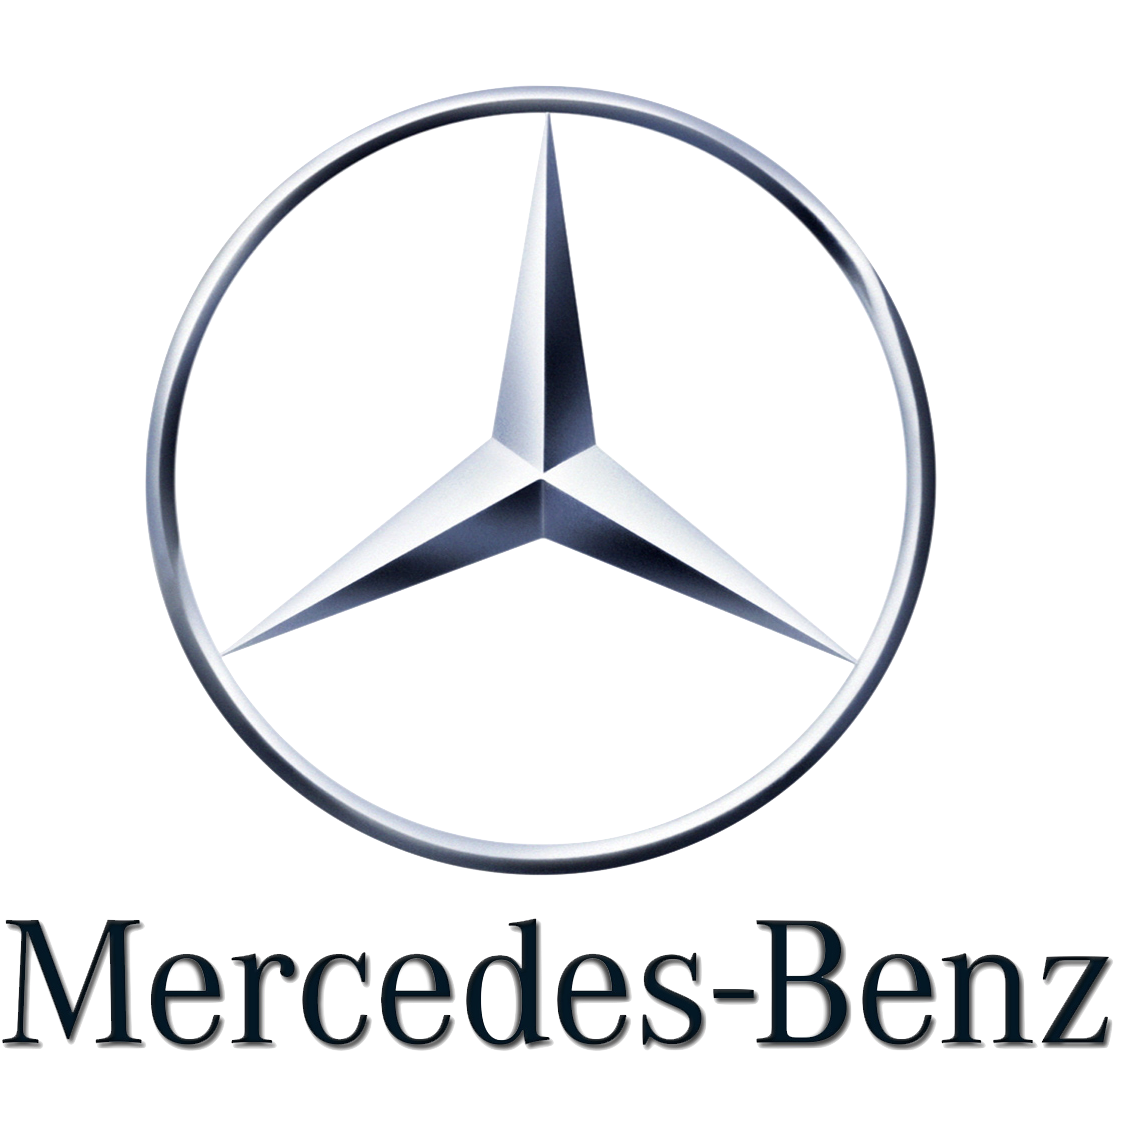 Used MERCEDES GLS-Class Engines For Sale